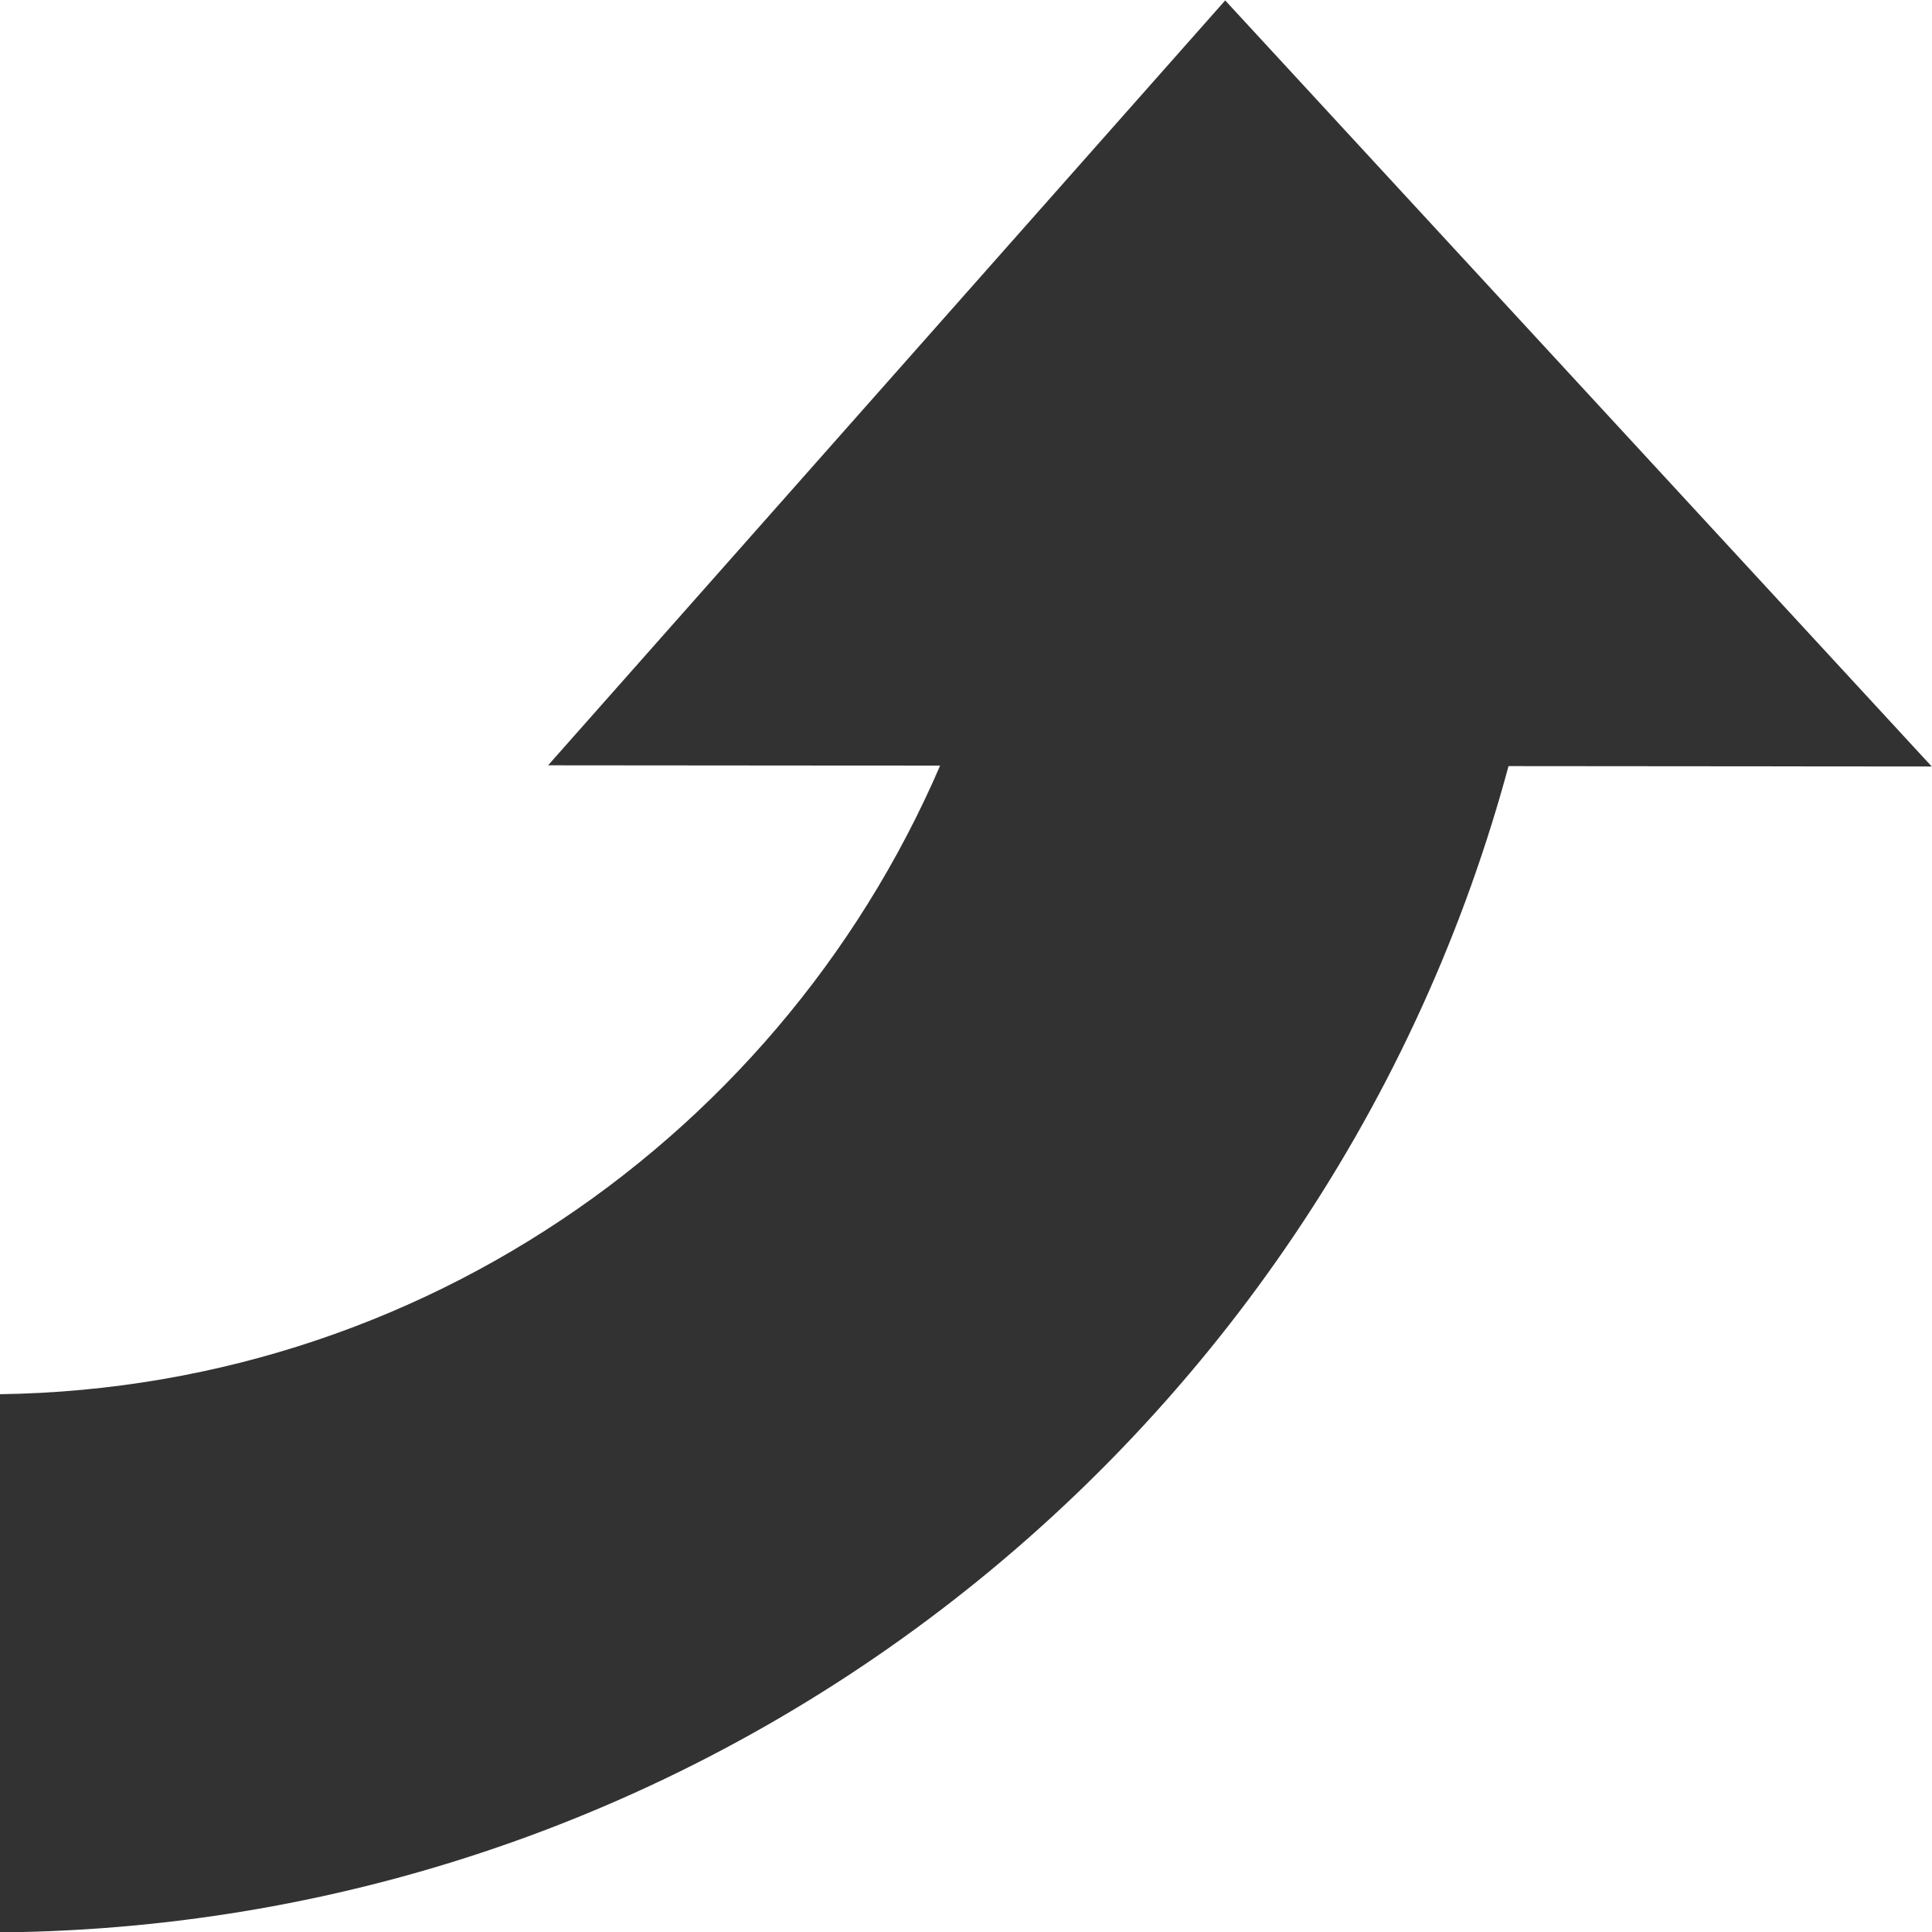 Motivation clipart arrow. Rotate left to top